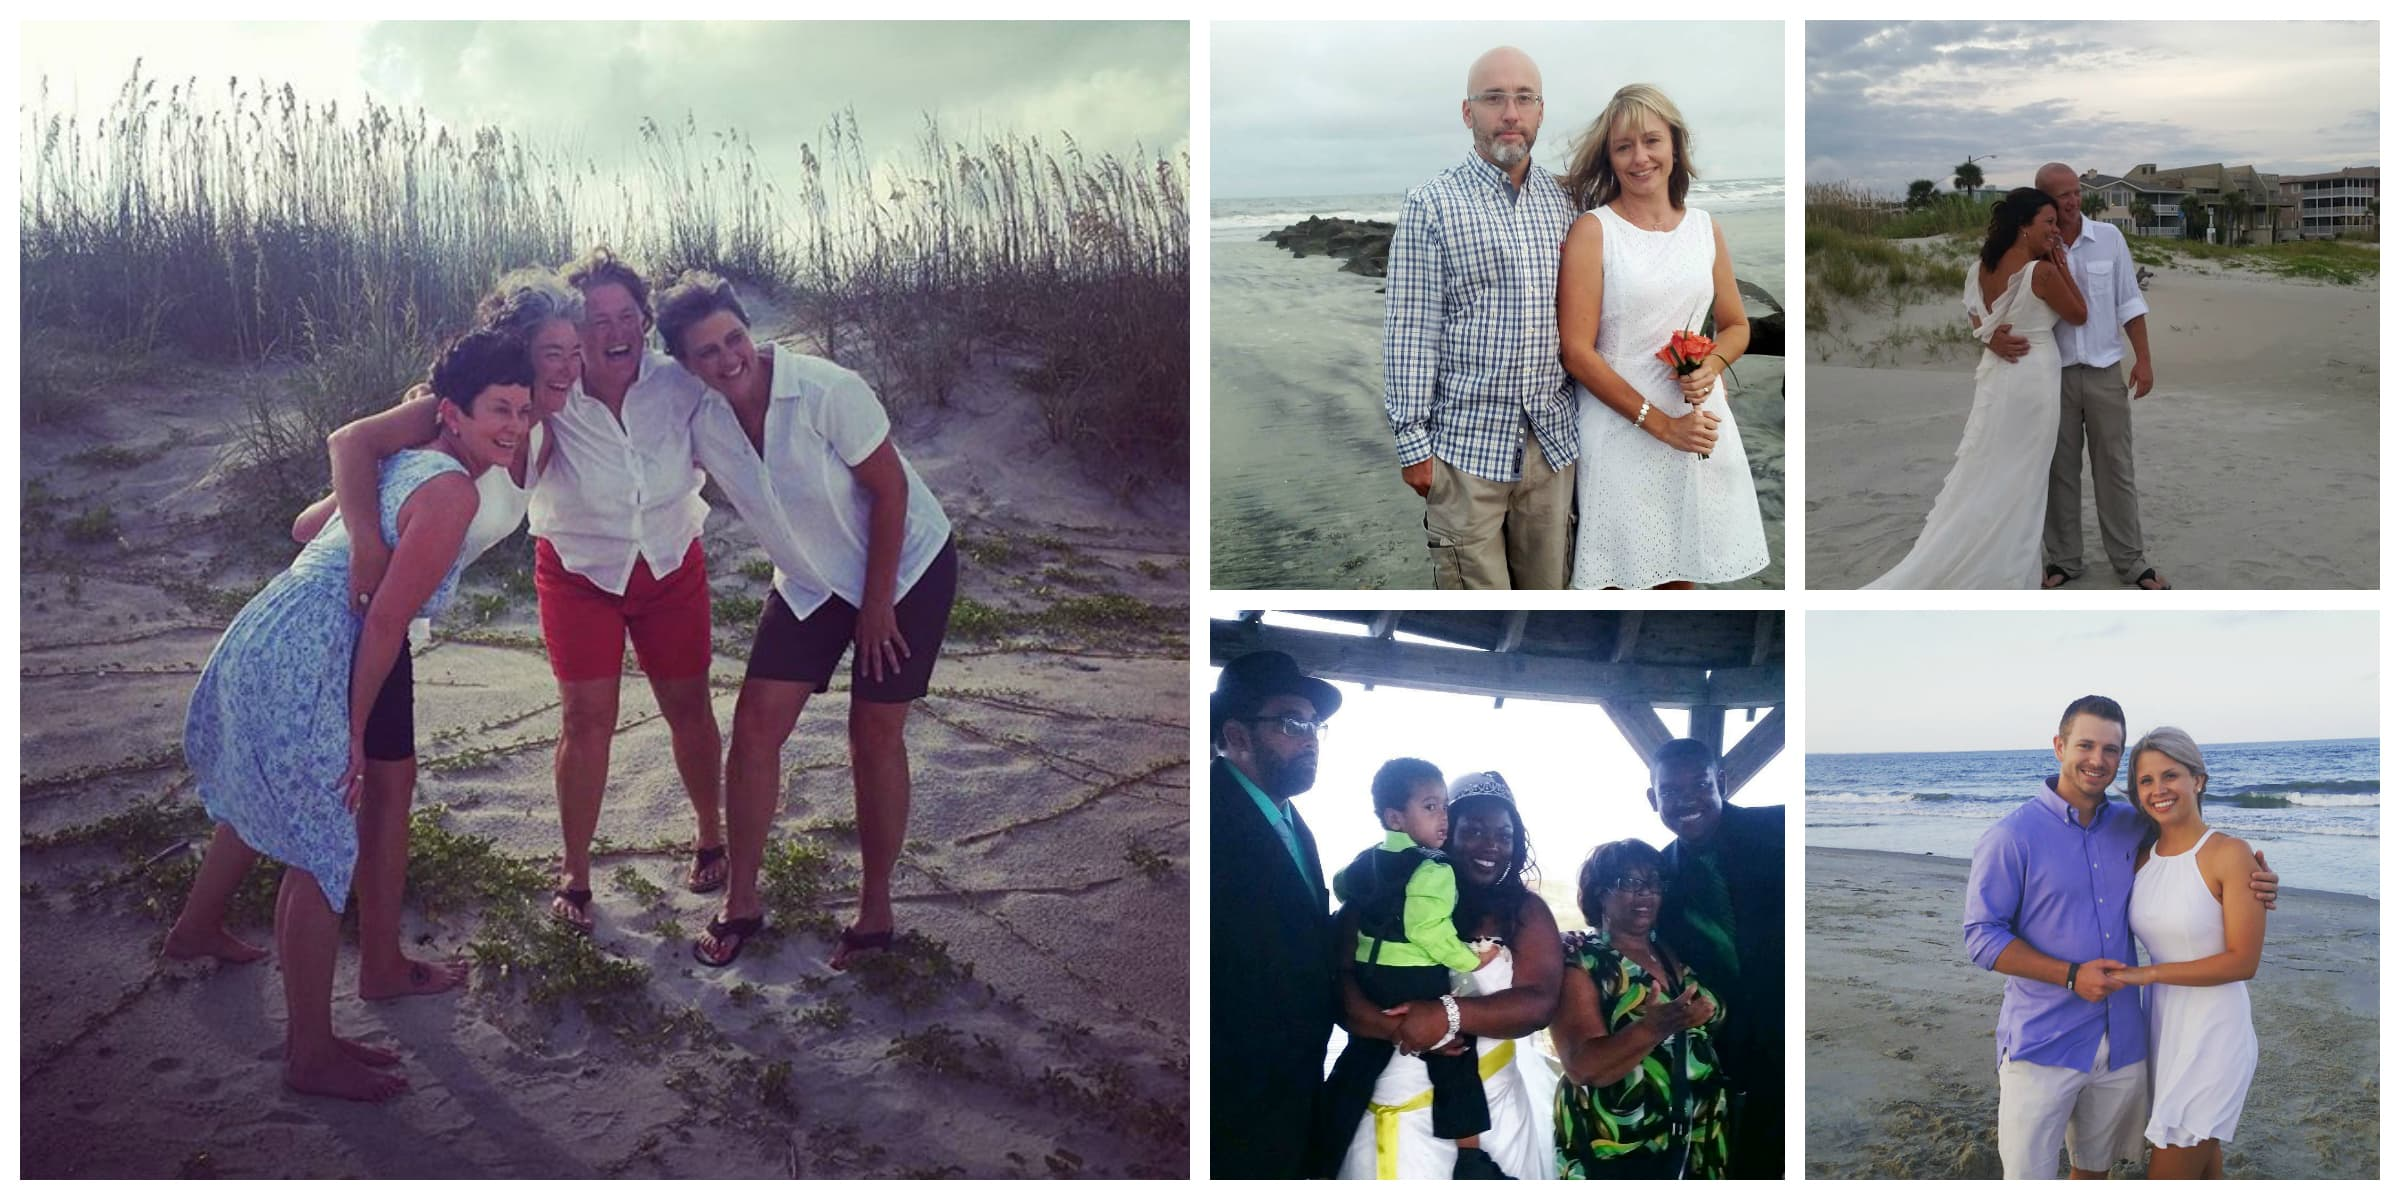 Weddings on Tybee Island, GA